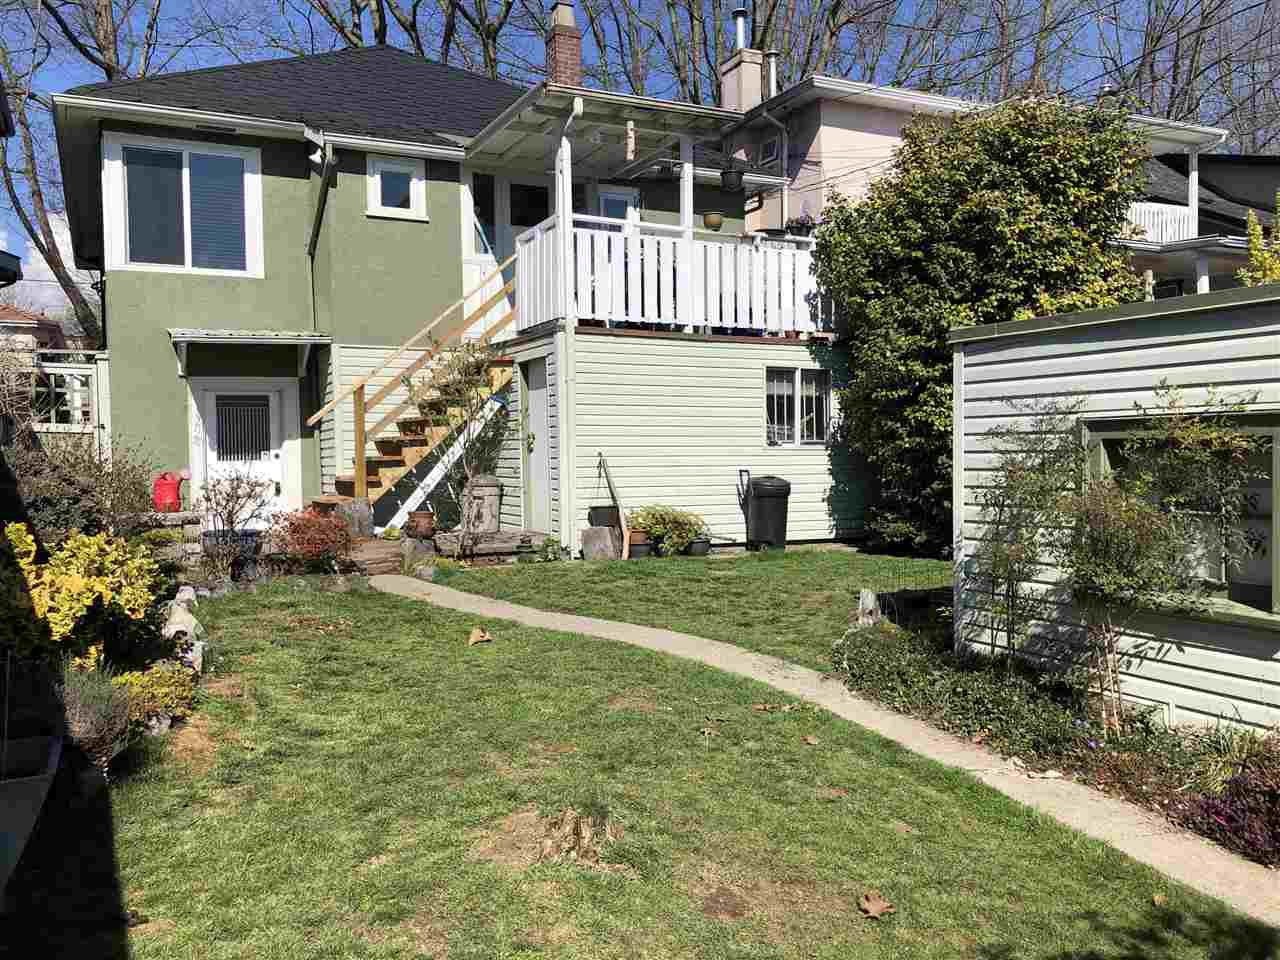 Main Photo: 3510 TURNER Street in Vancouver: Renfrew VE House for sale (Vancouver East)  : MLS®# R2355313